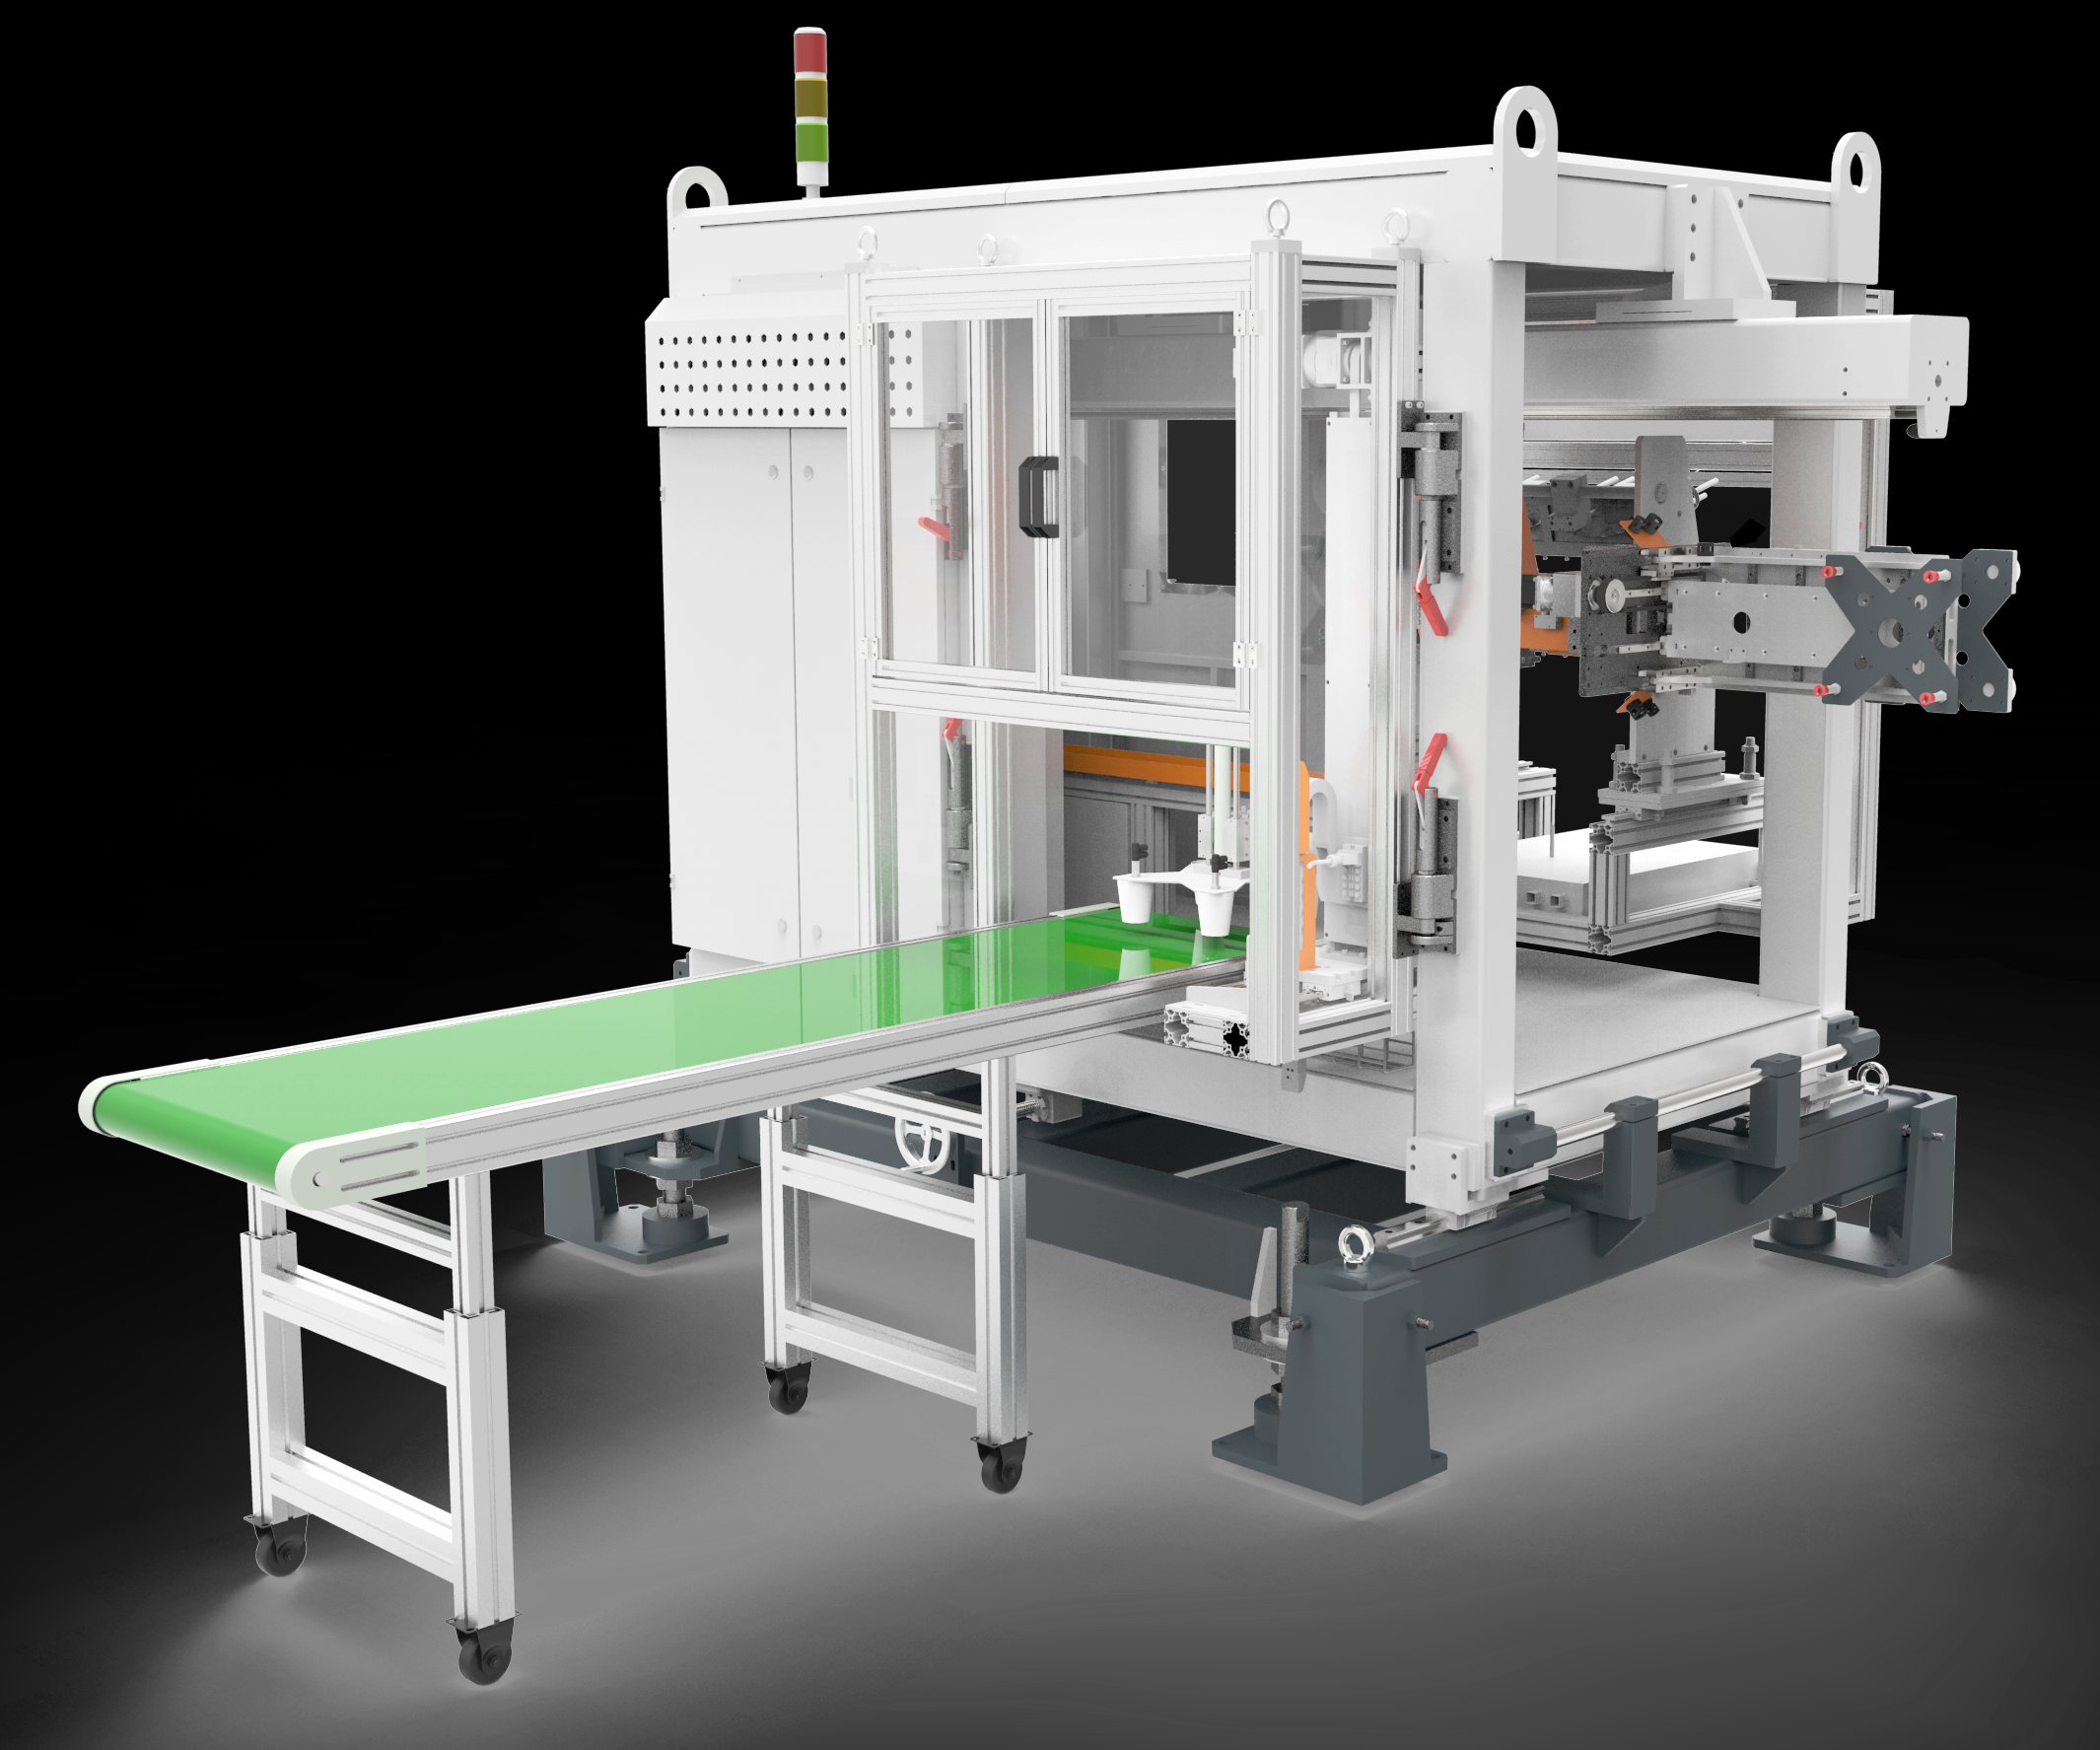 Well-Lih in-mold labeling system